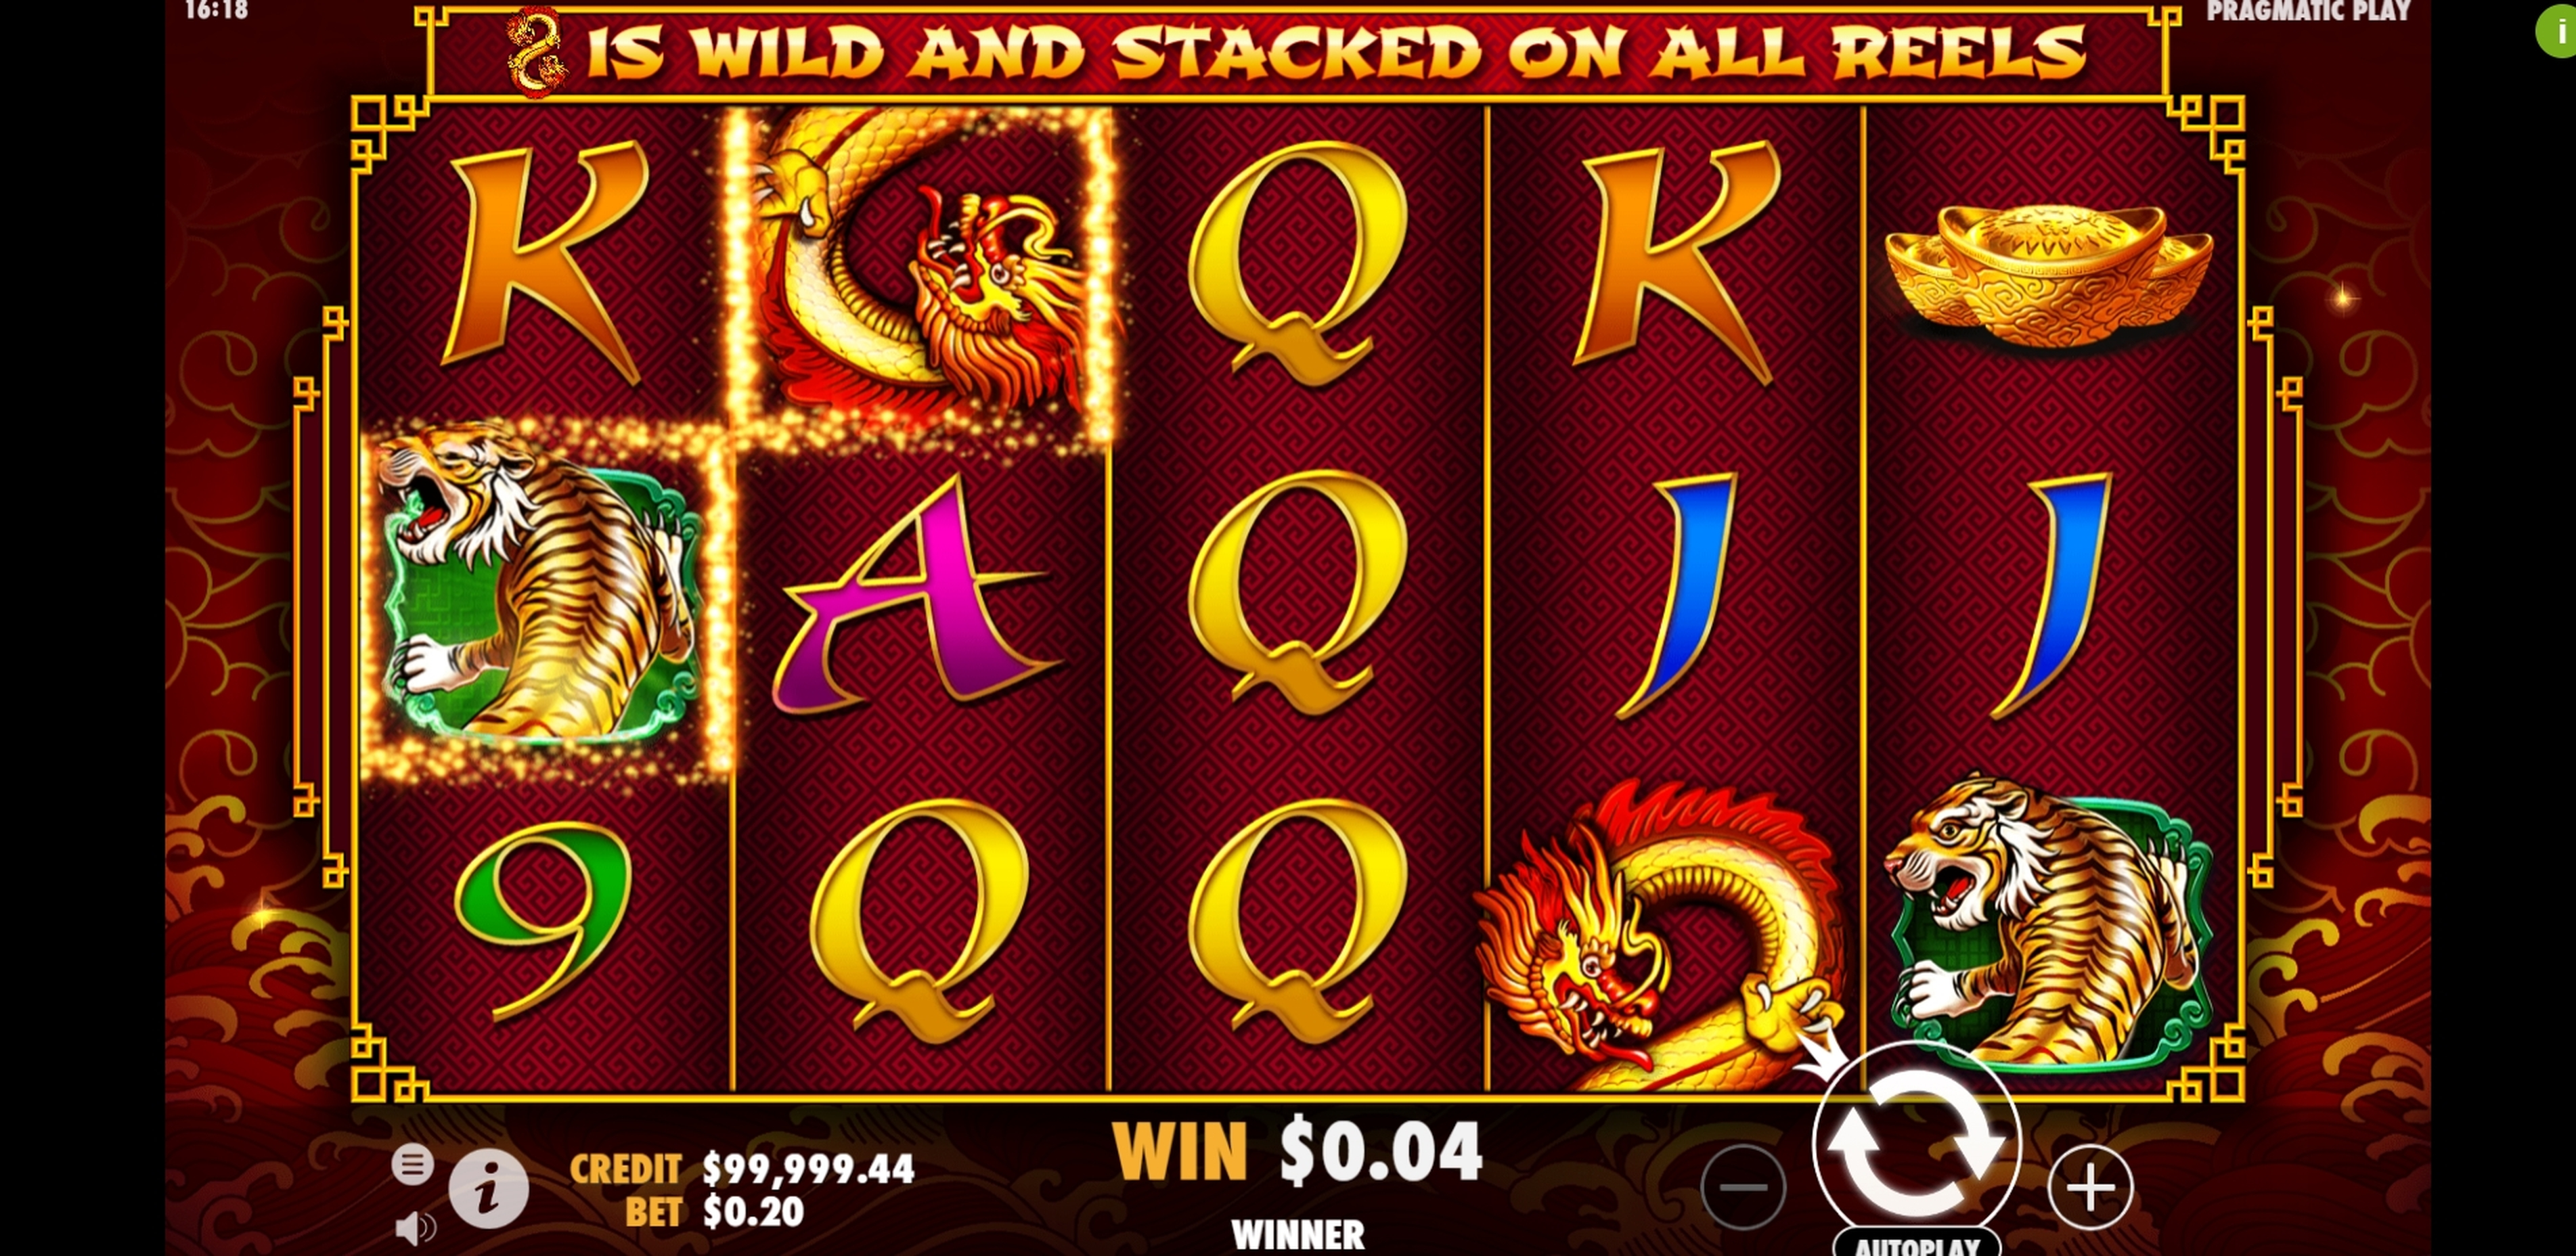 Win Money in 8 Dragons Free Slot Game by Pragmatic Play